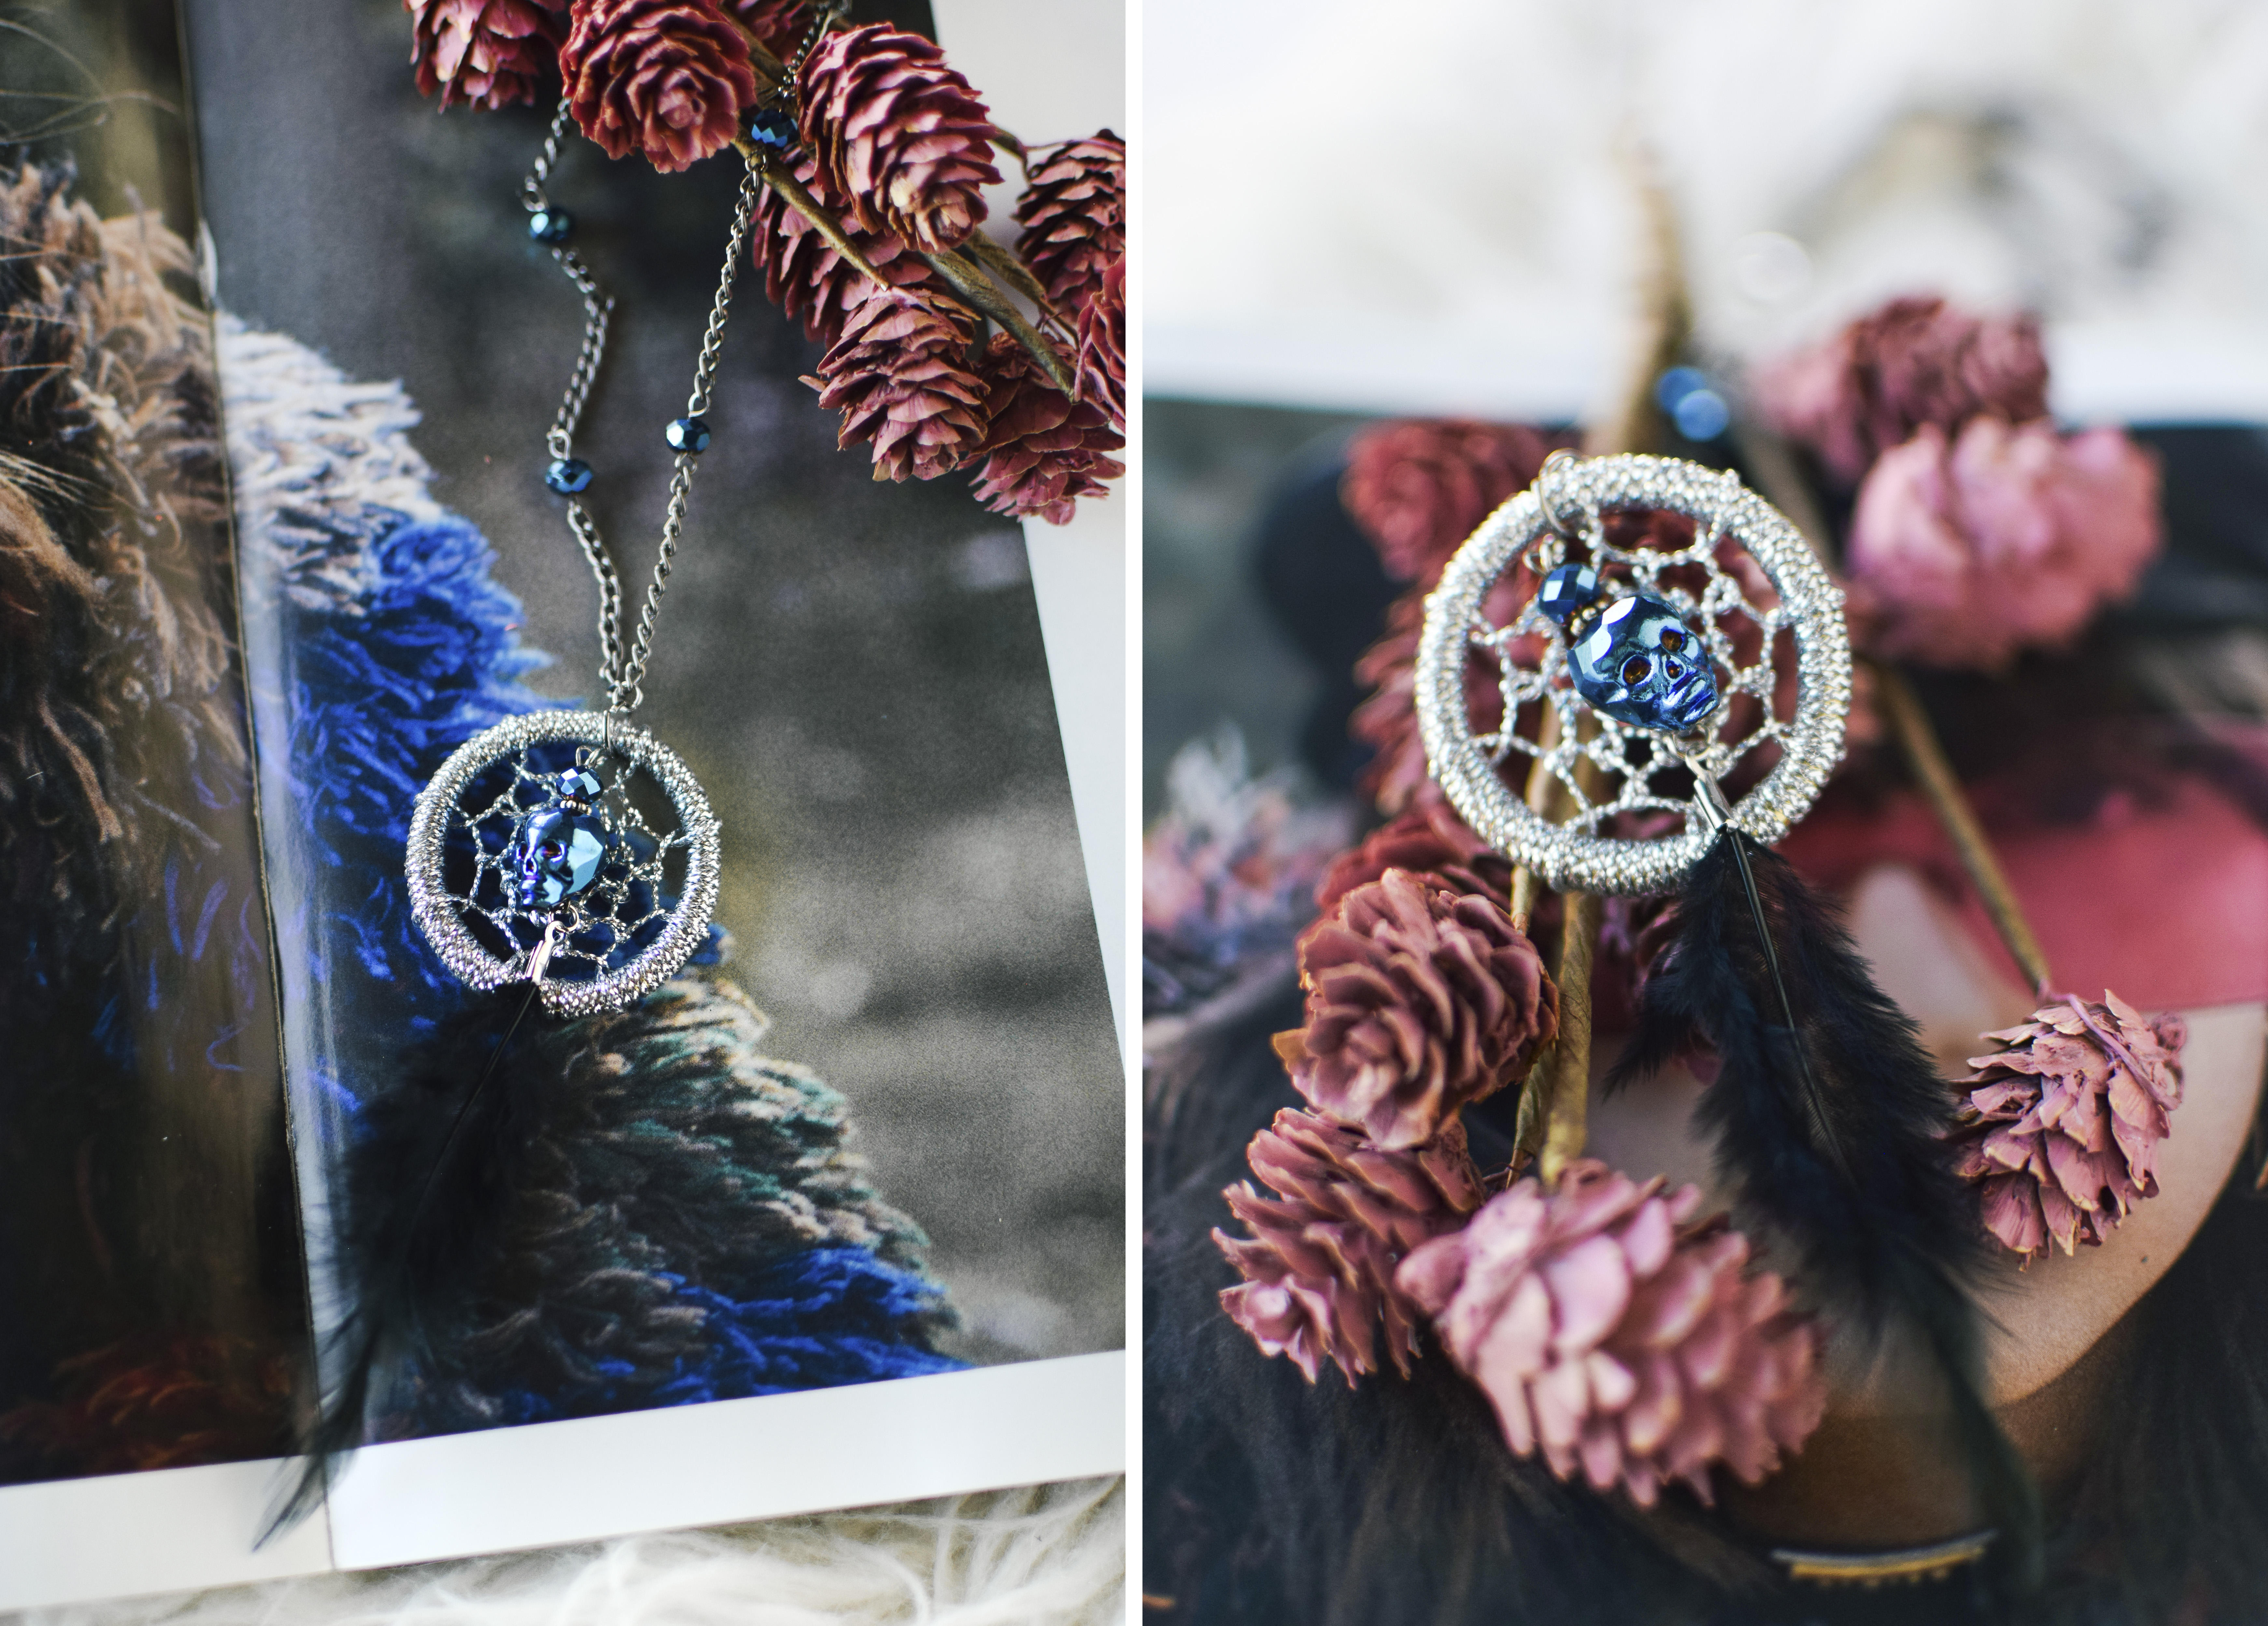 diy skull dreamcatcher necklace by quiet lion creations